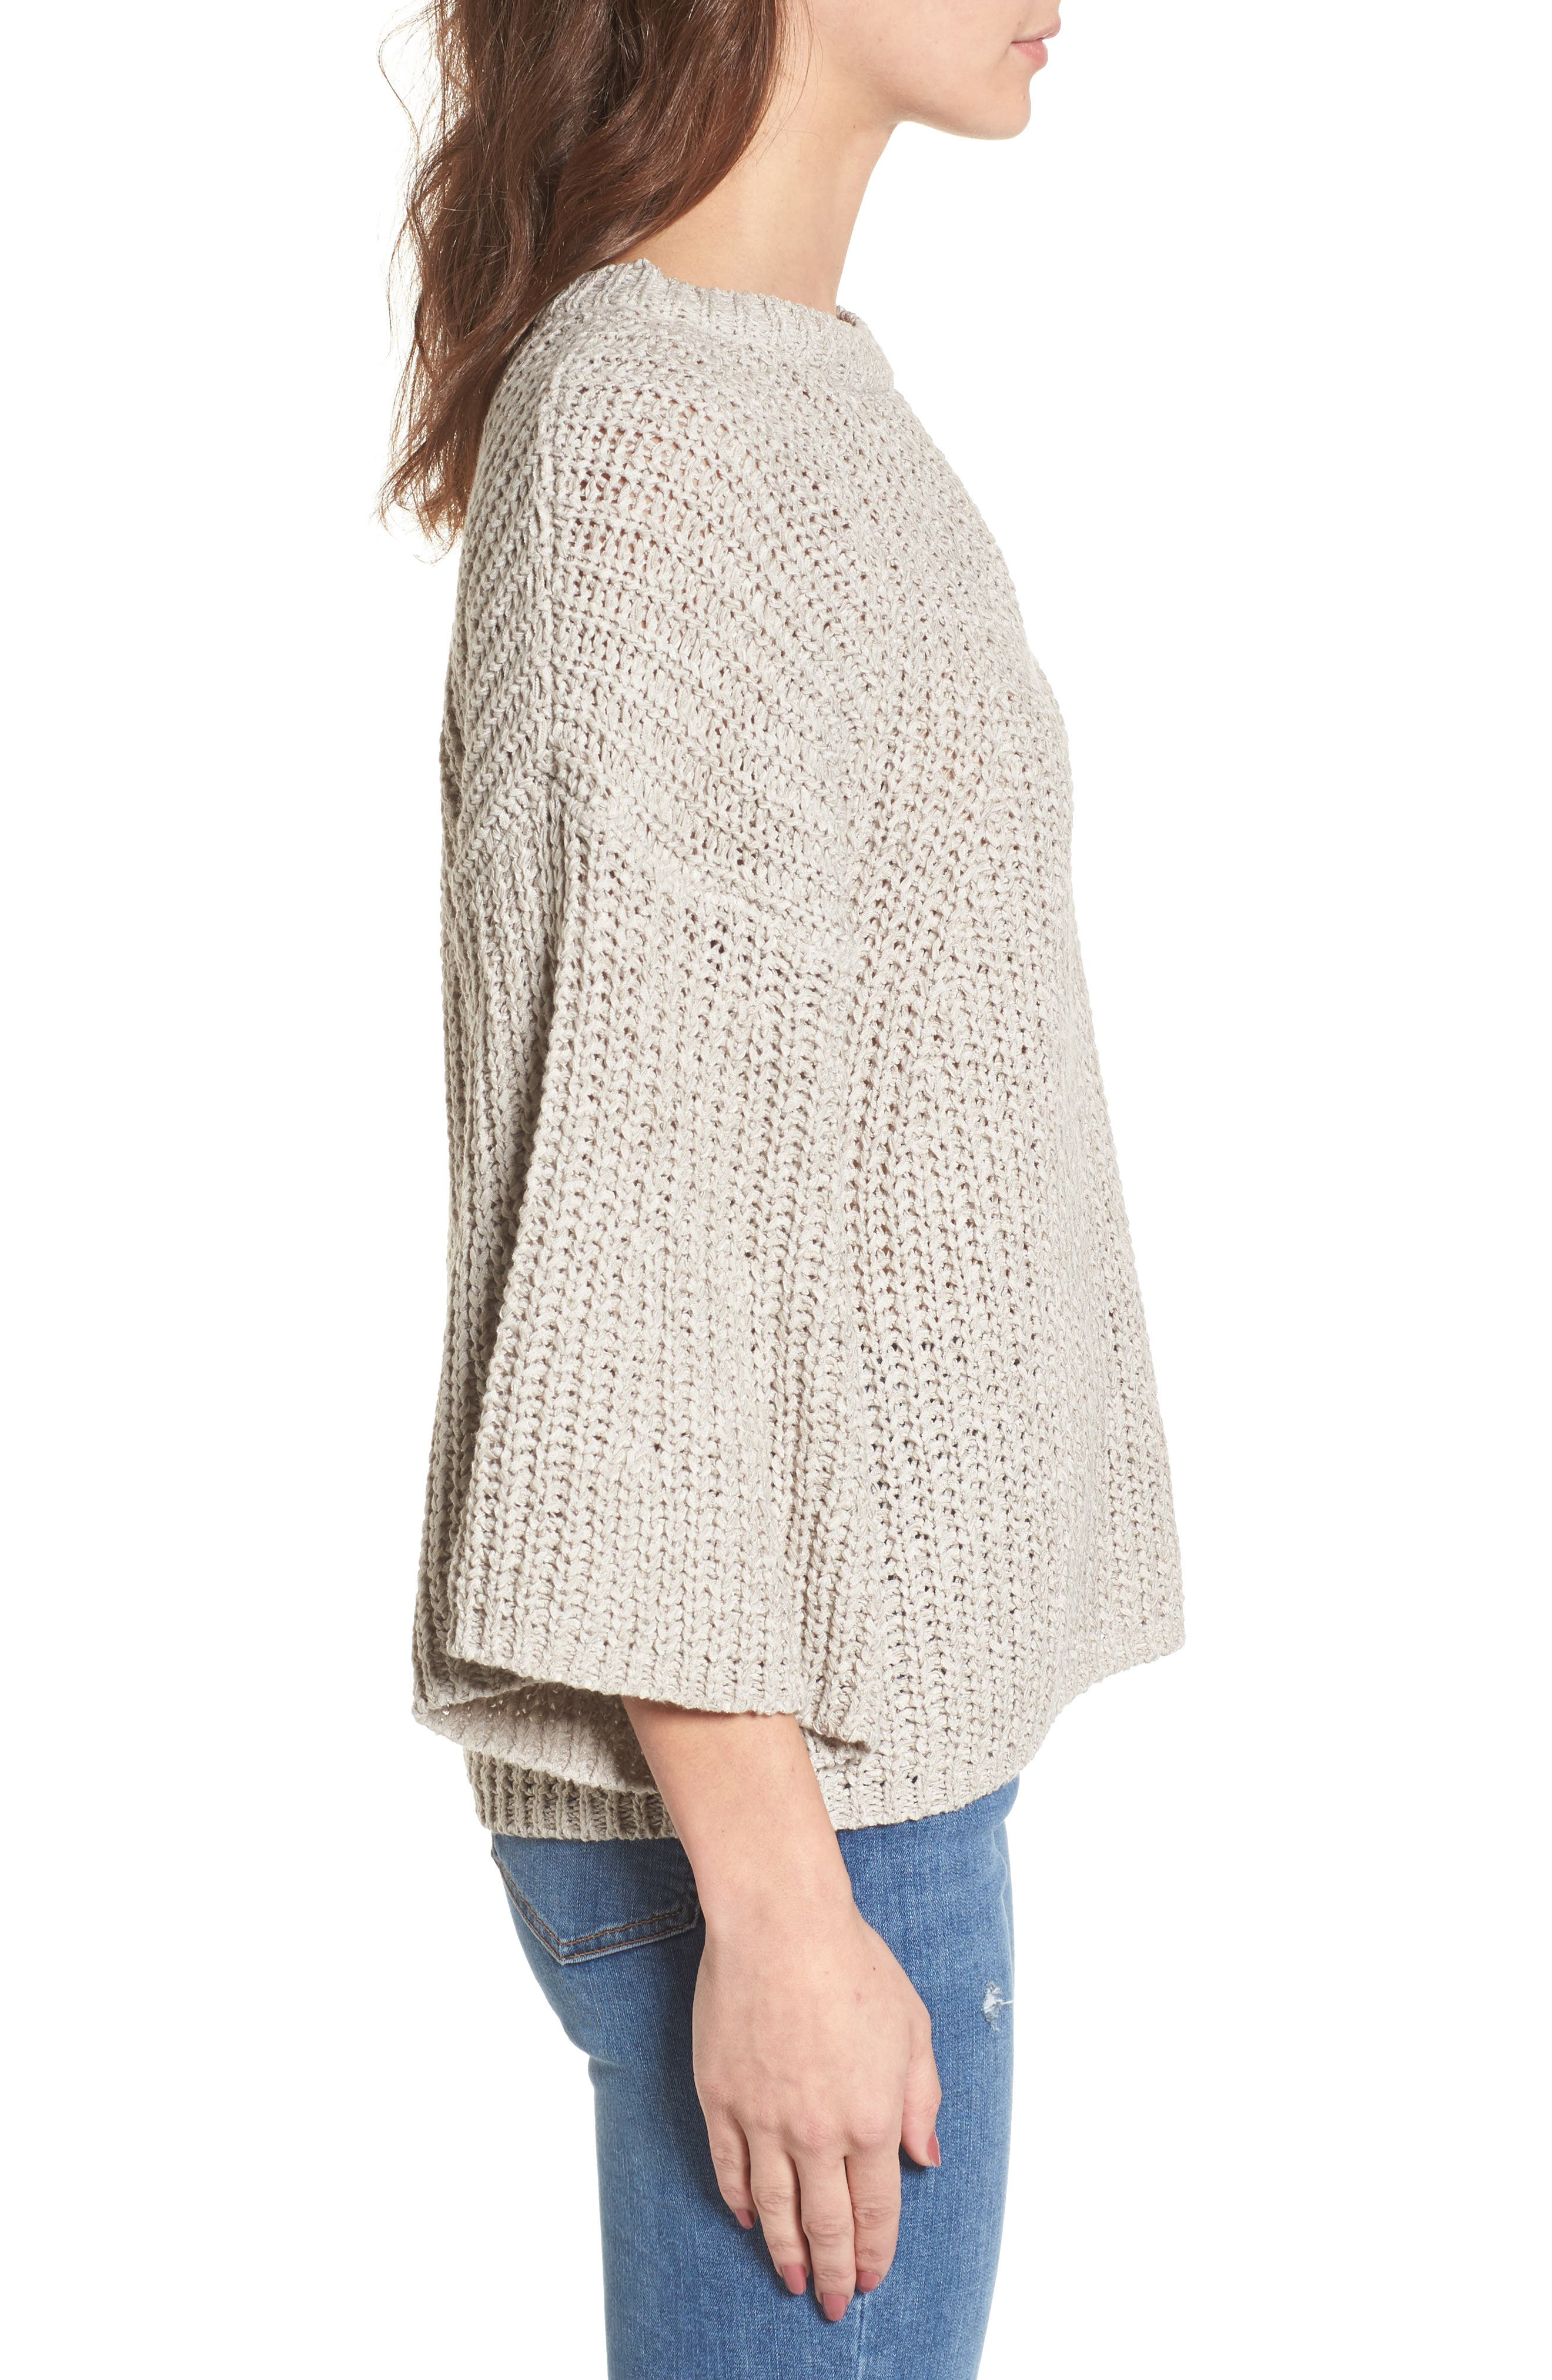 Bell Sleeve Sweater,                             Alternate thumbnail 3, color,                             280